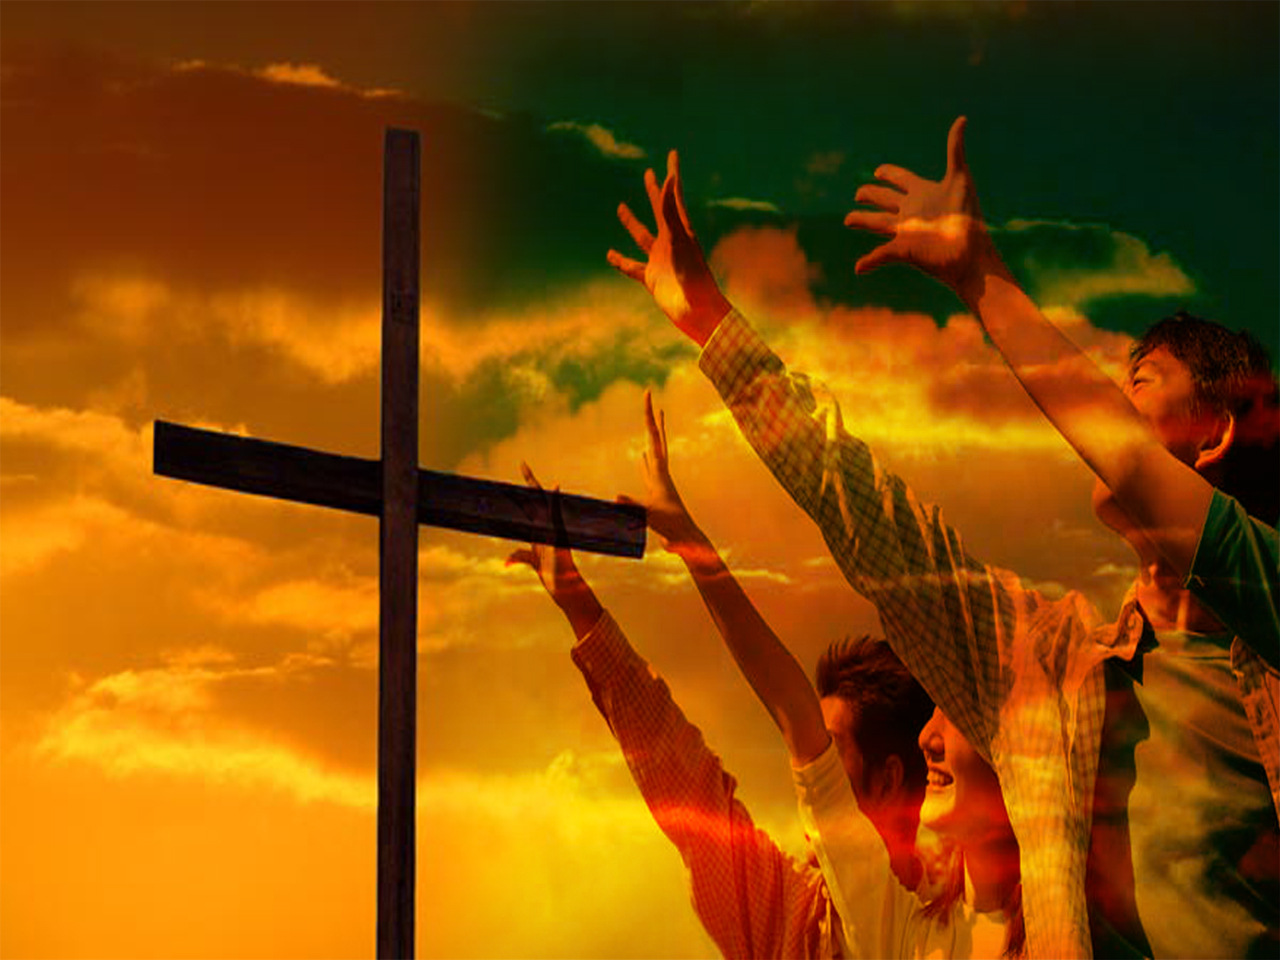 Christian slide backgrounds christianhub - Filename Praise God Christianity 30399906 1280 960 Jpg